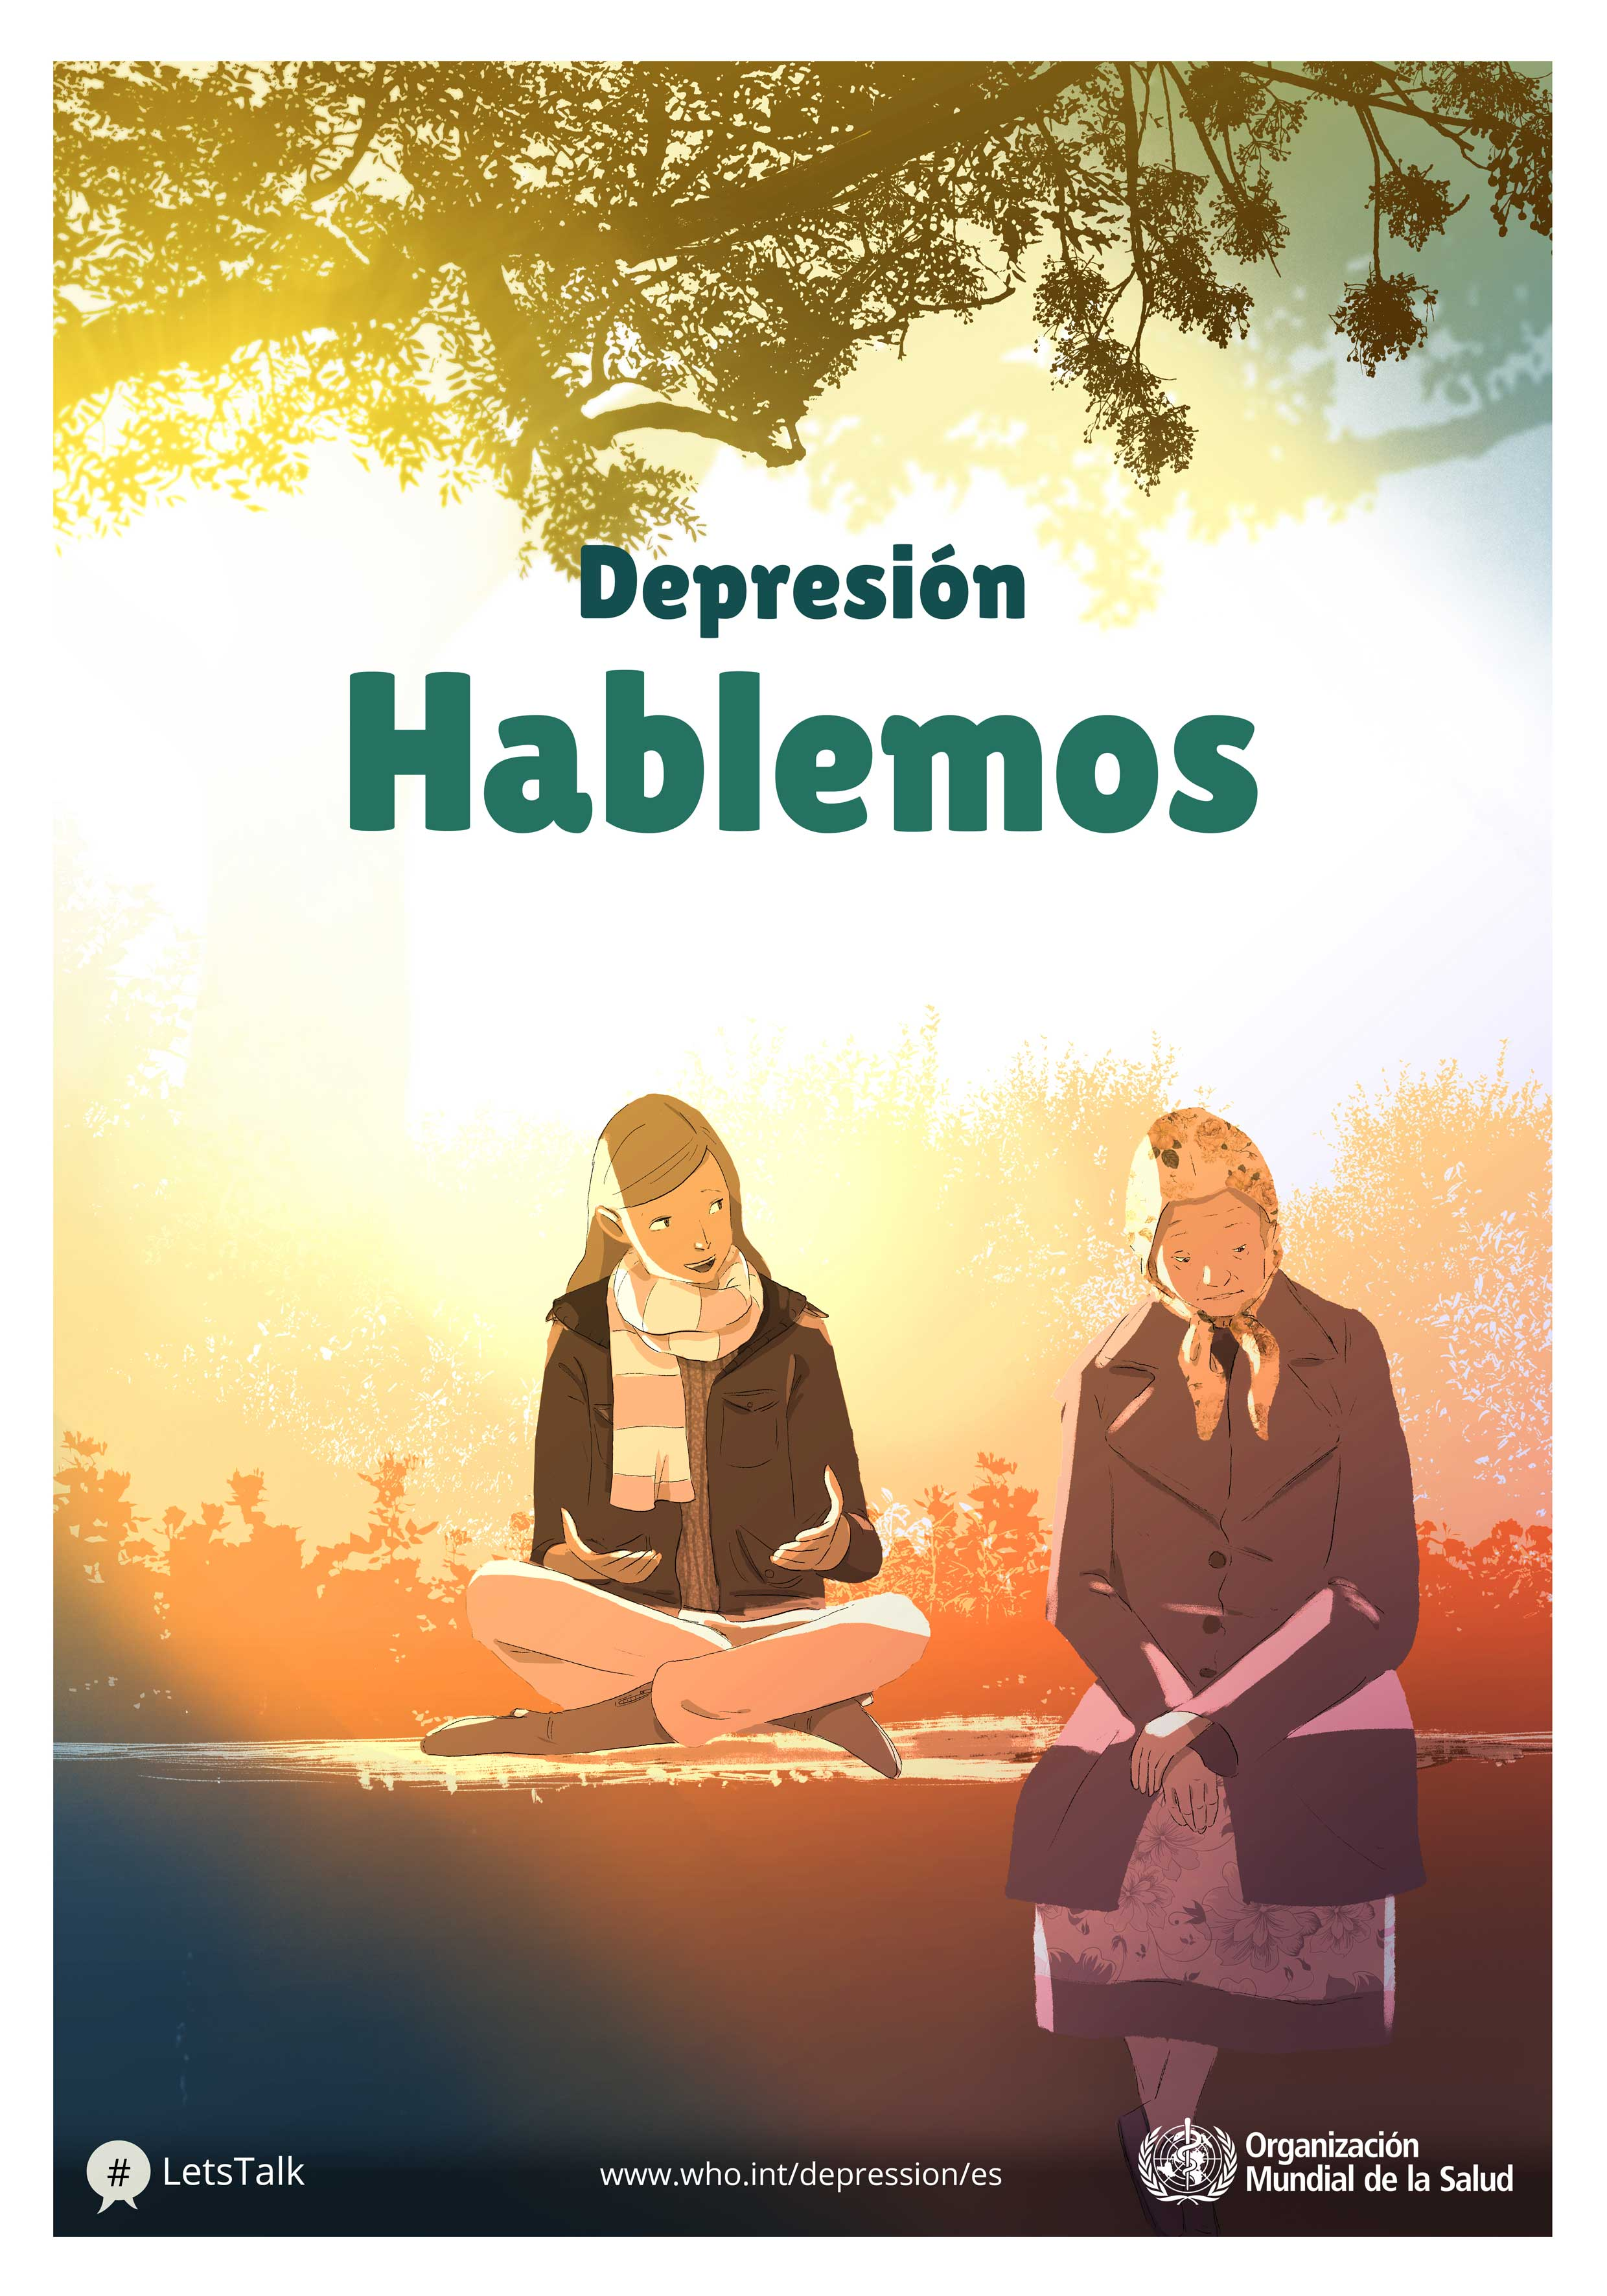 Fuente: OMS (http://www.who.int/campaigns/world-health-day/2017/posters-depression/euro/es/)